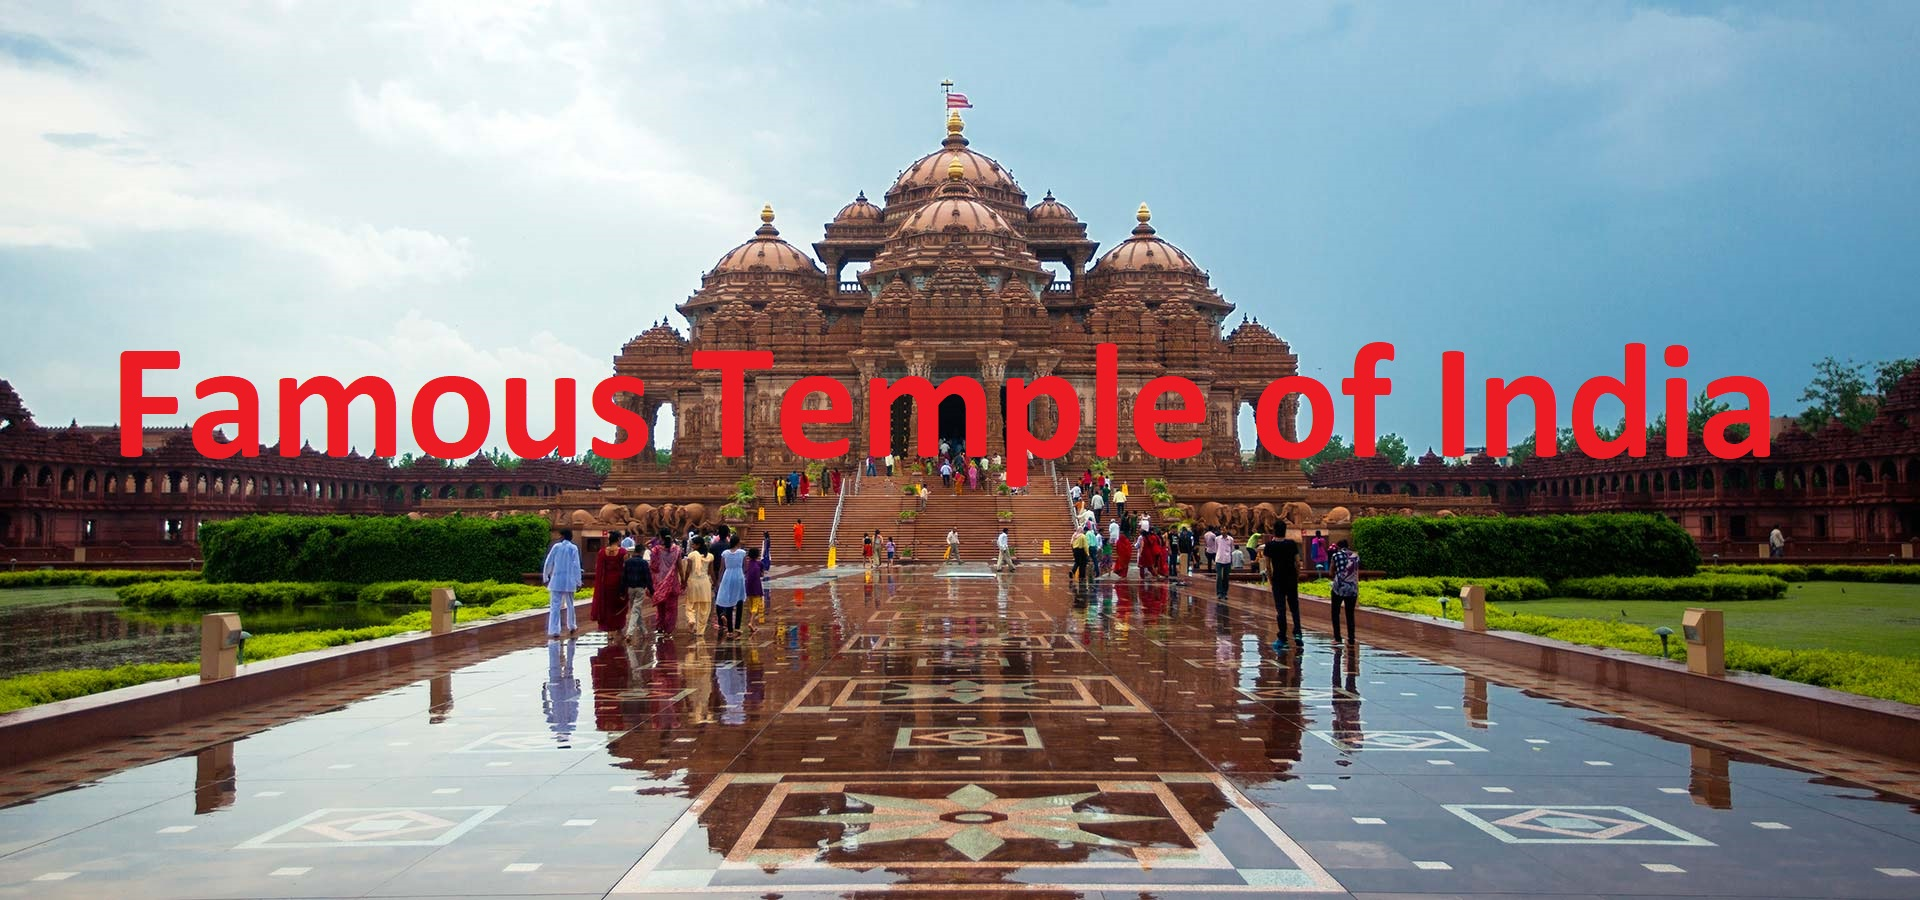 National Temple of India   Symbols of India